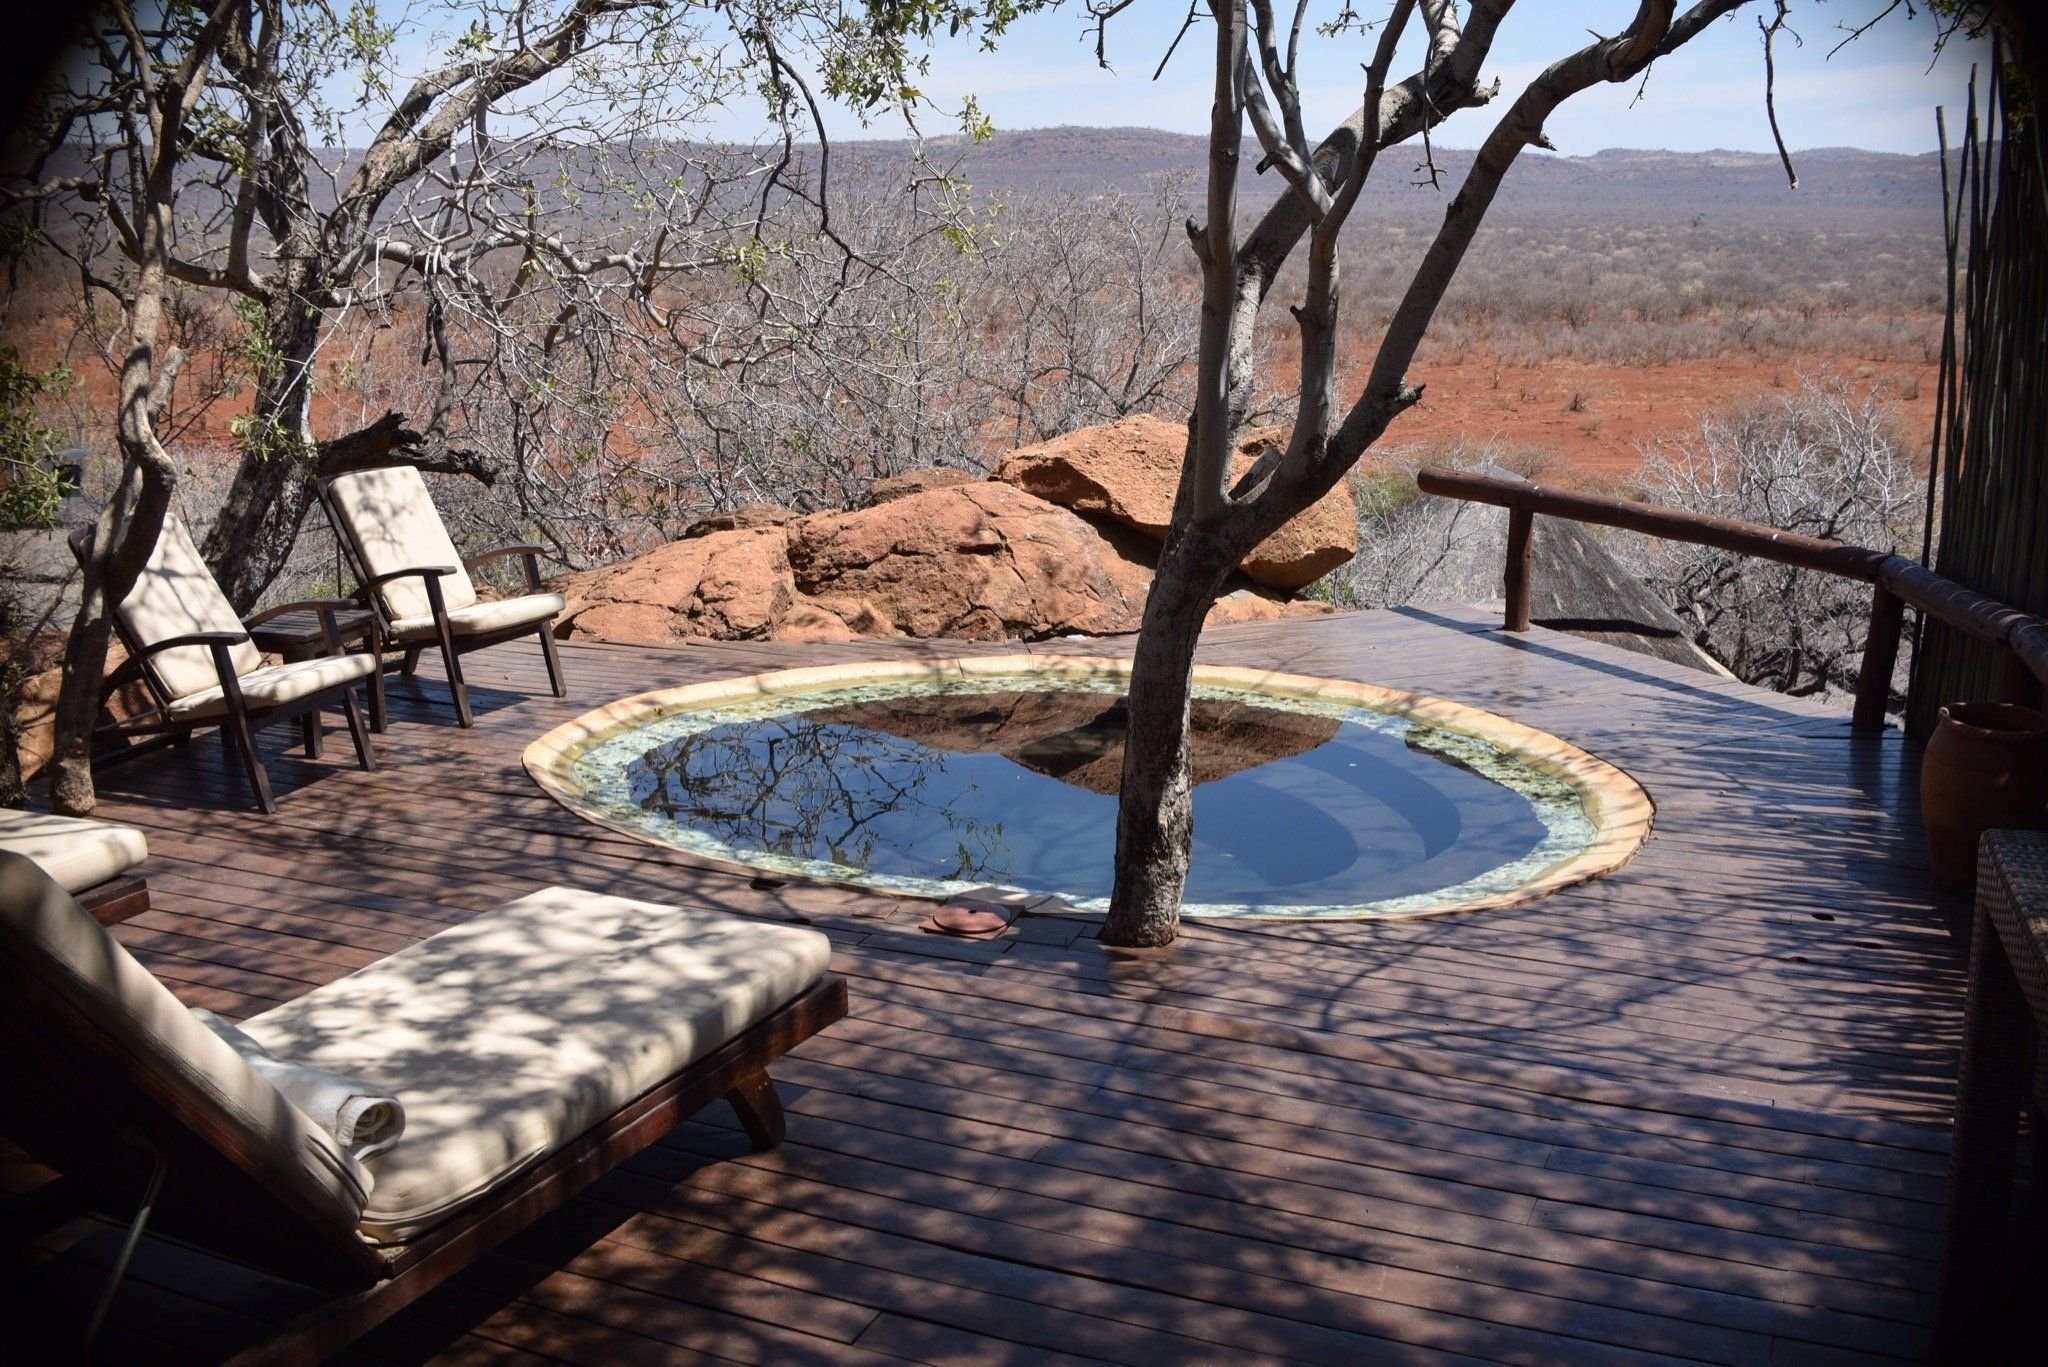 Madikwe Hills Private Game Lodge   UPDATED 2017 Reviews U0026 Price Comparison  (Madikwe Game Reserve, South Africa)   TripAdvisor